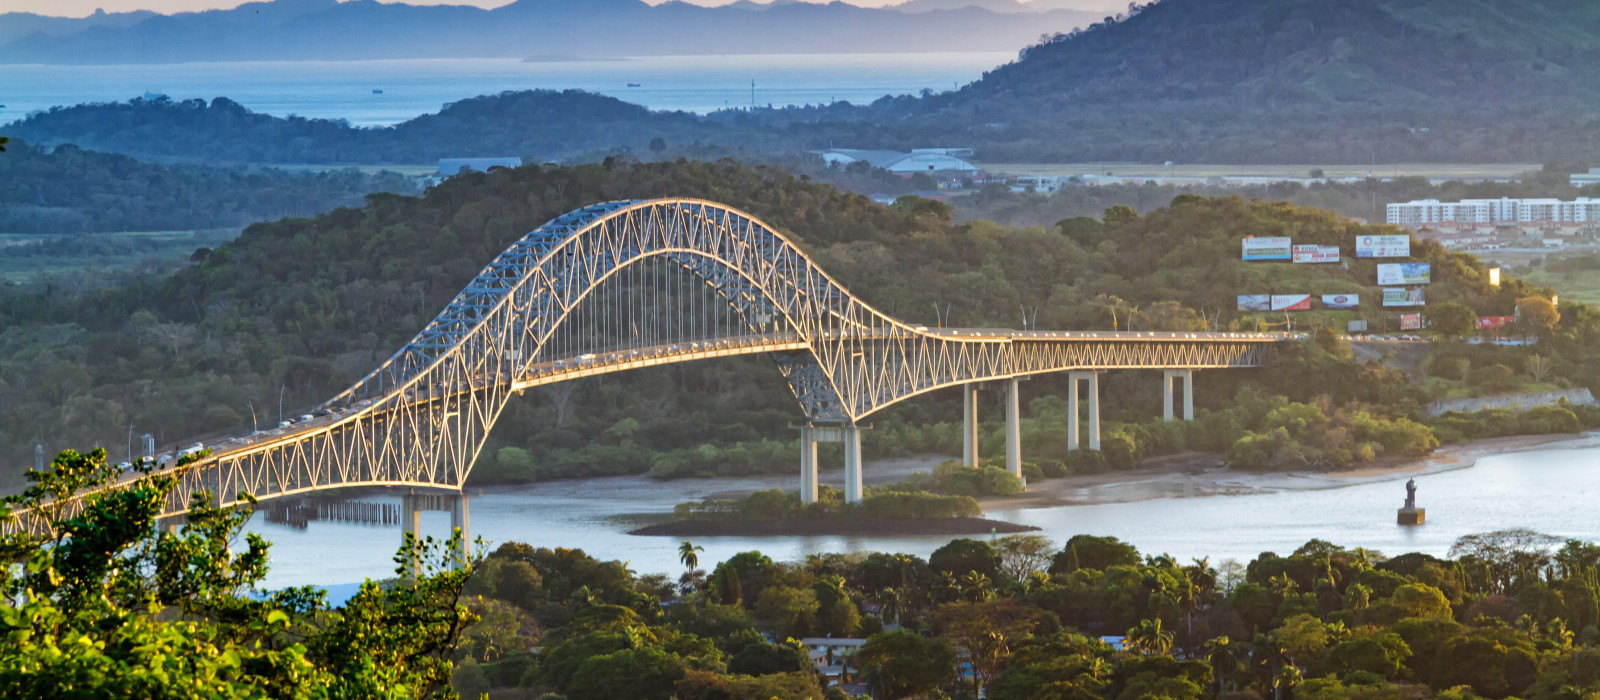 Panoramic aerial view of the Bridge of The Americas over the Panama Canal Pacific Entrance. Sunset scene with a gentle mist in the background. The bridge is spanning two continents - two Americas.